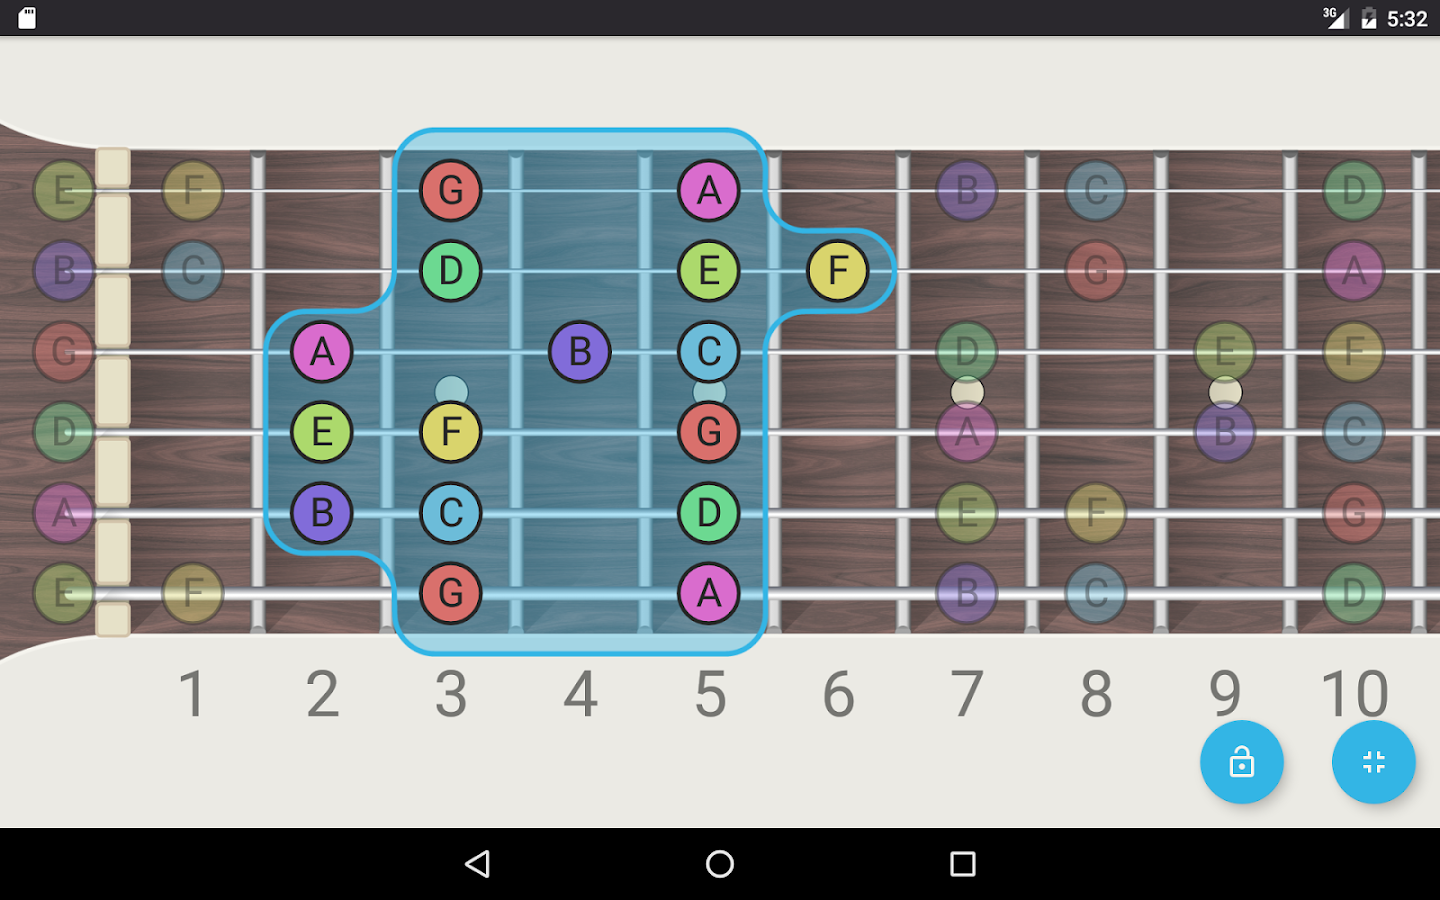 Chord guitar chord finder 42 apk download android music guitar chord finder 42 screenshot 17 hexwebz Image collections